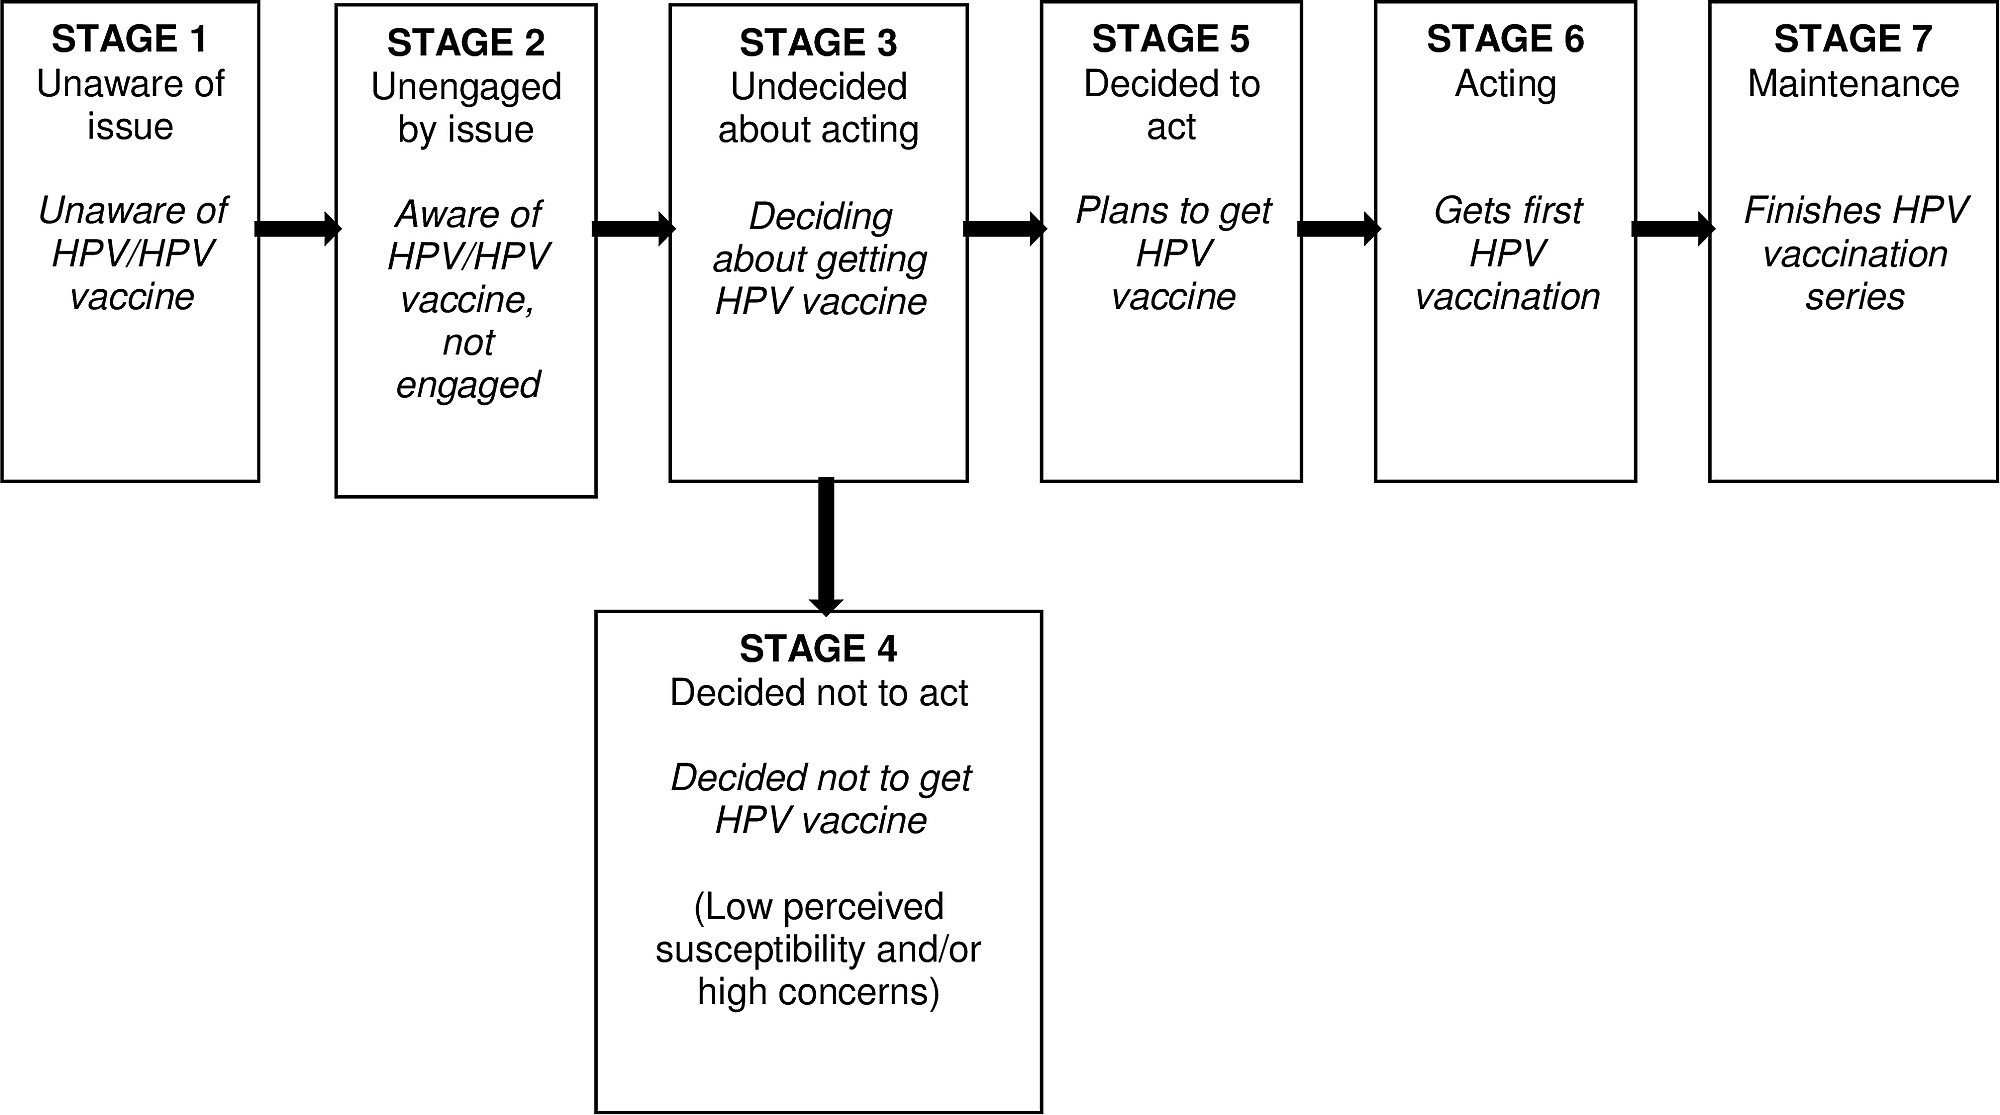 female human papillomavirus (hpv) vaccination global uptake and the impact of attitudes)